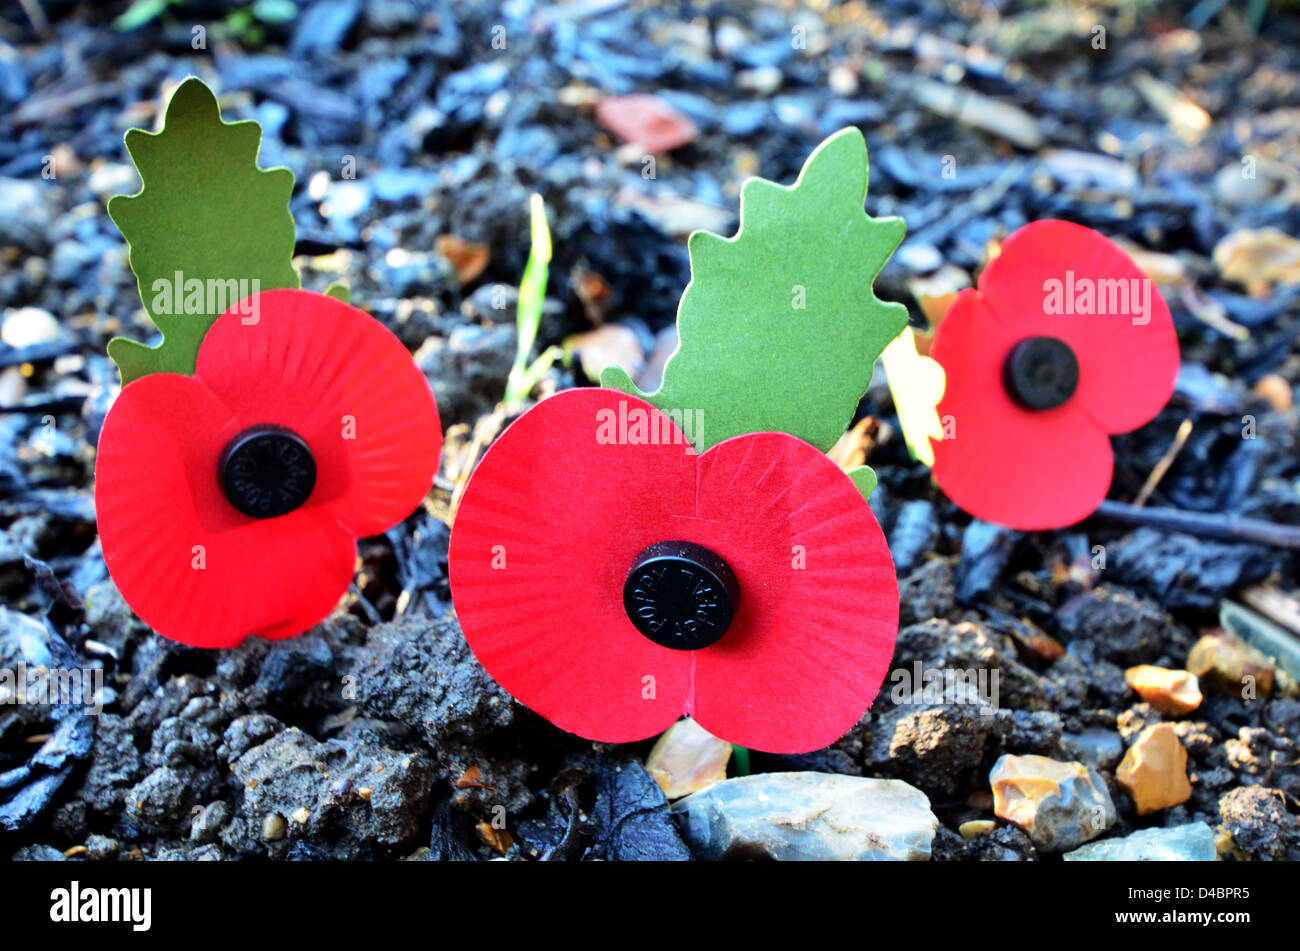 artificial remembrance day poppies in a garden stock photo